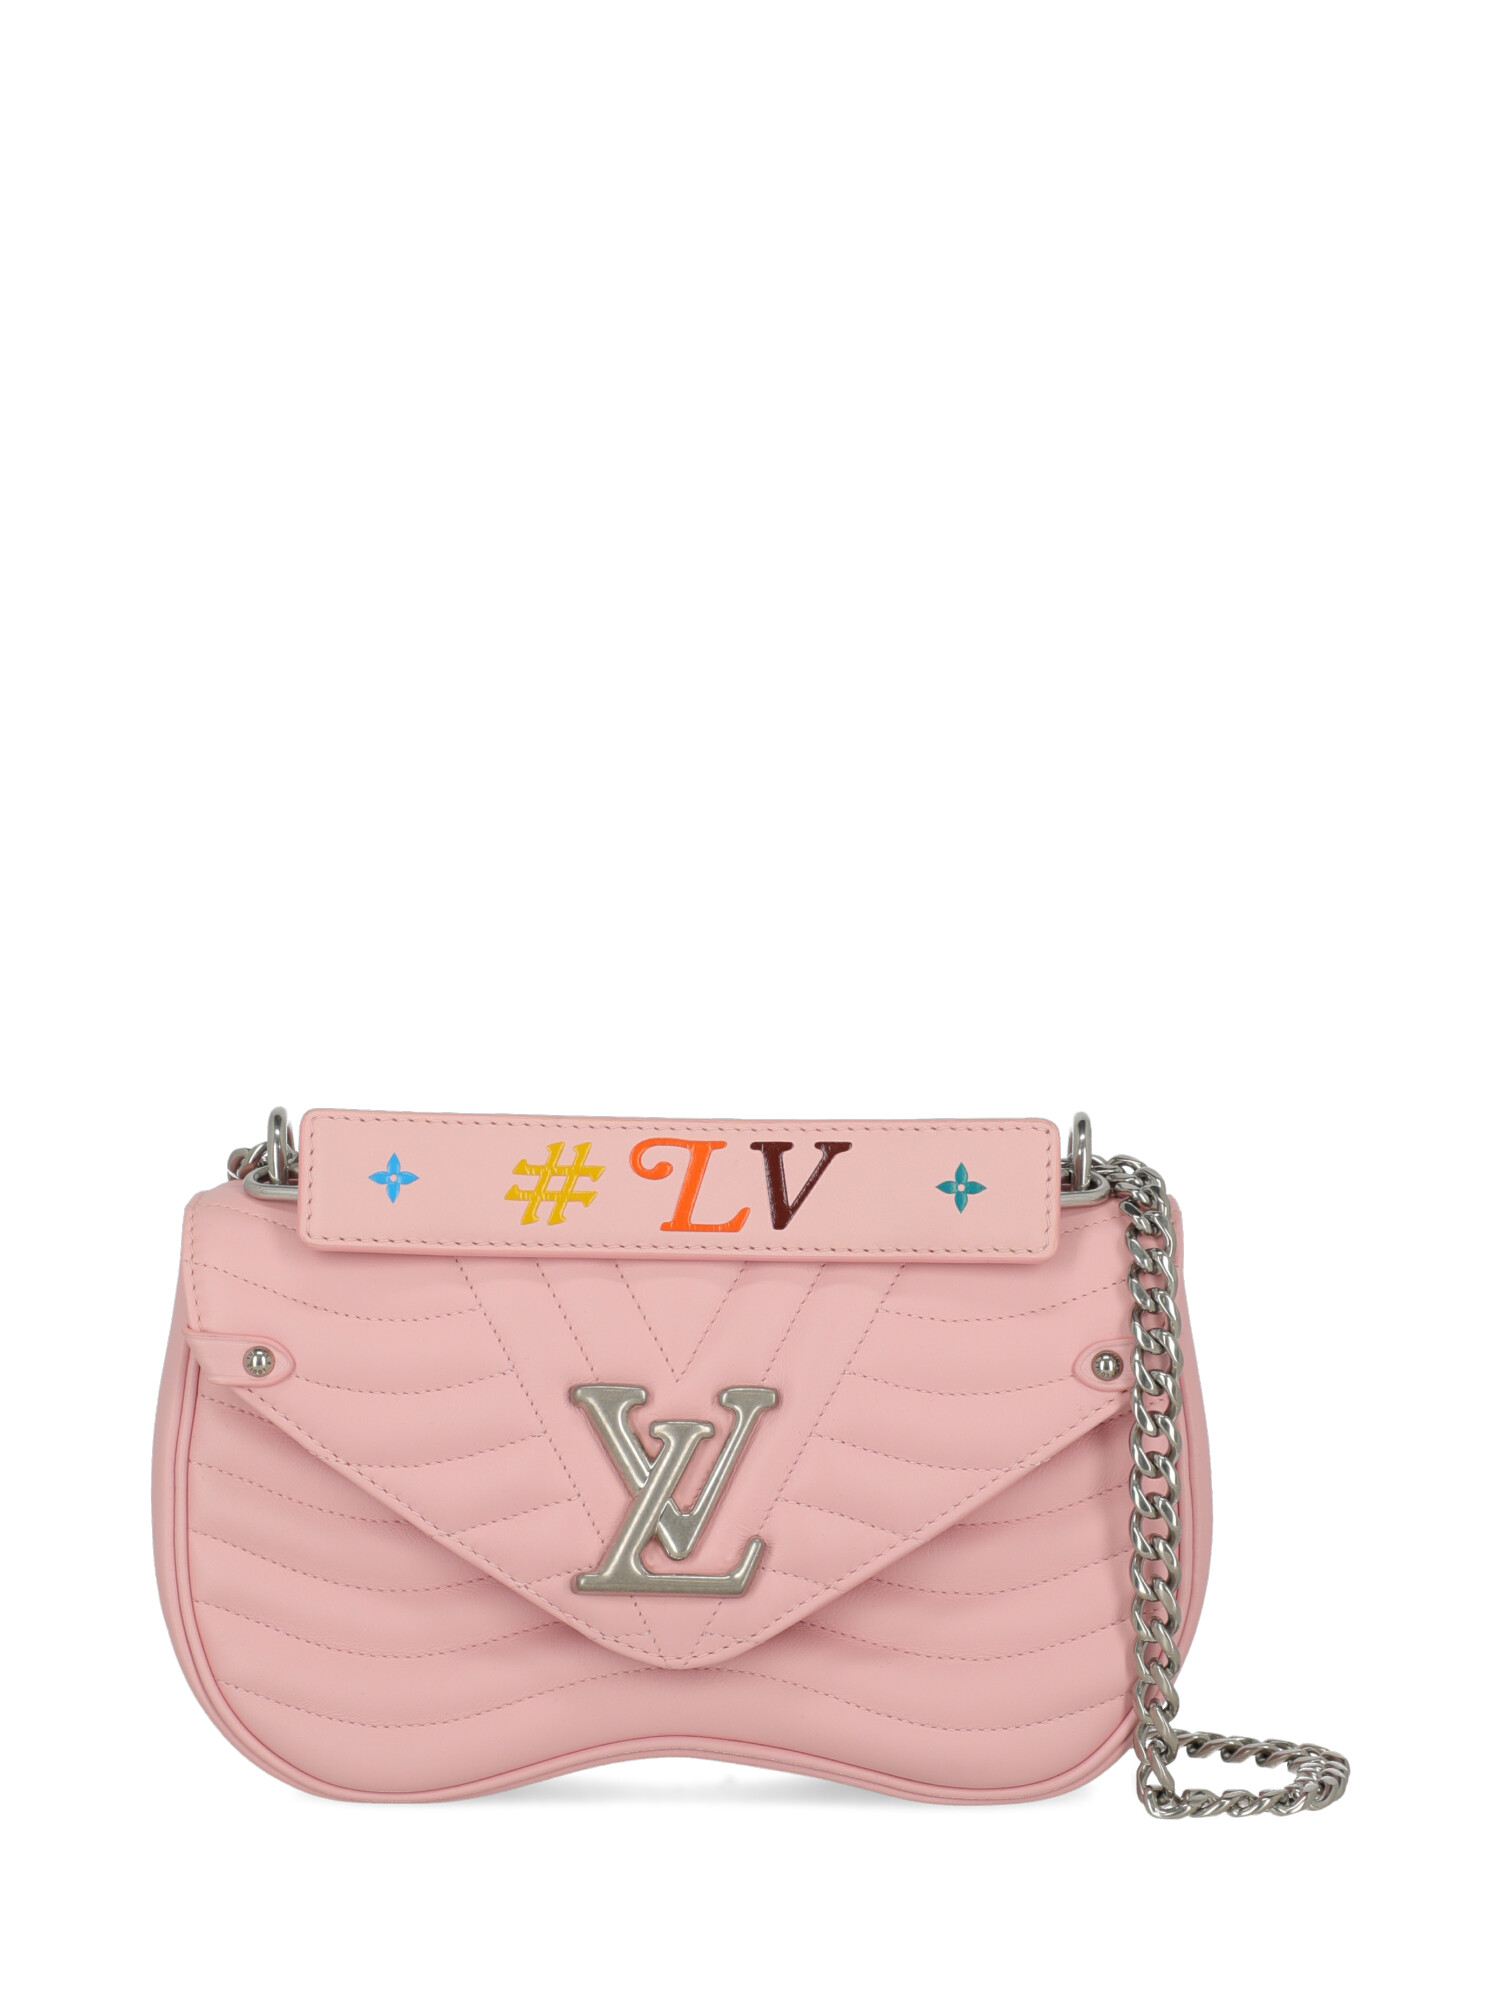 Pre-owned Louis Vuitton Bag In Pink